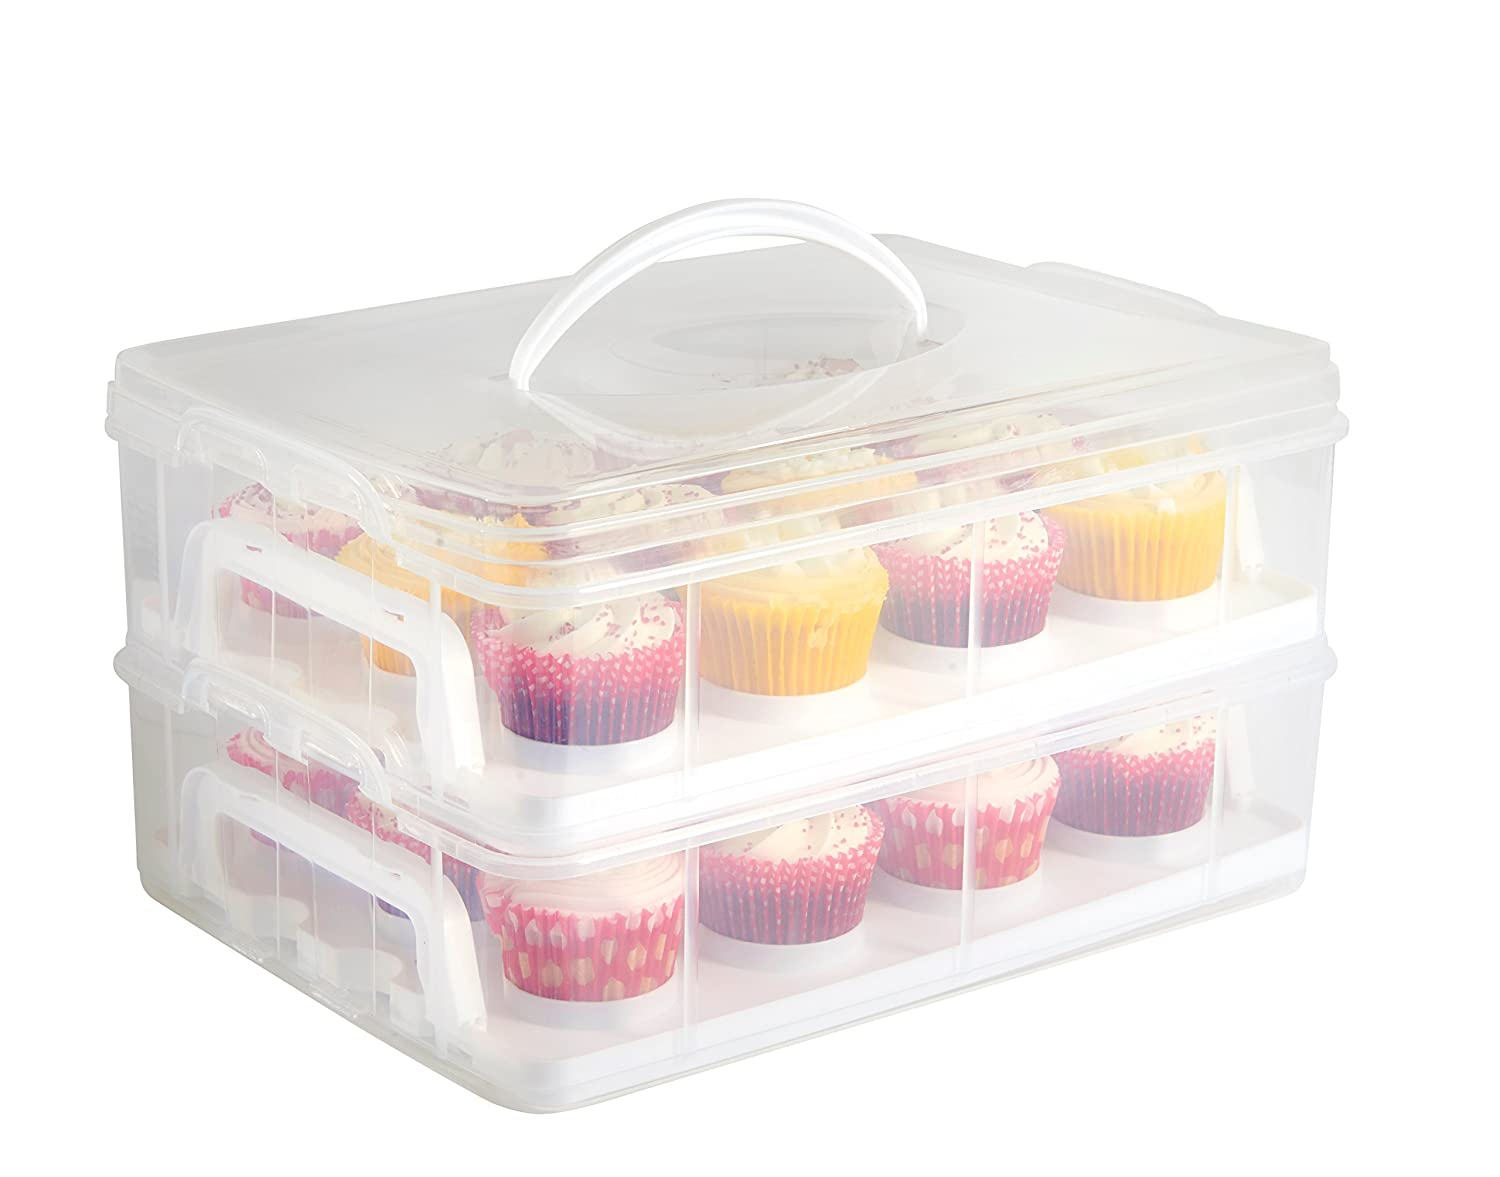 VonShef Snap and Stack Cupcake Storage Carrier 2 Tier - Store up to 24 Cupcakes or 2 Large Cakes цена и фото